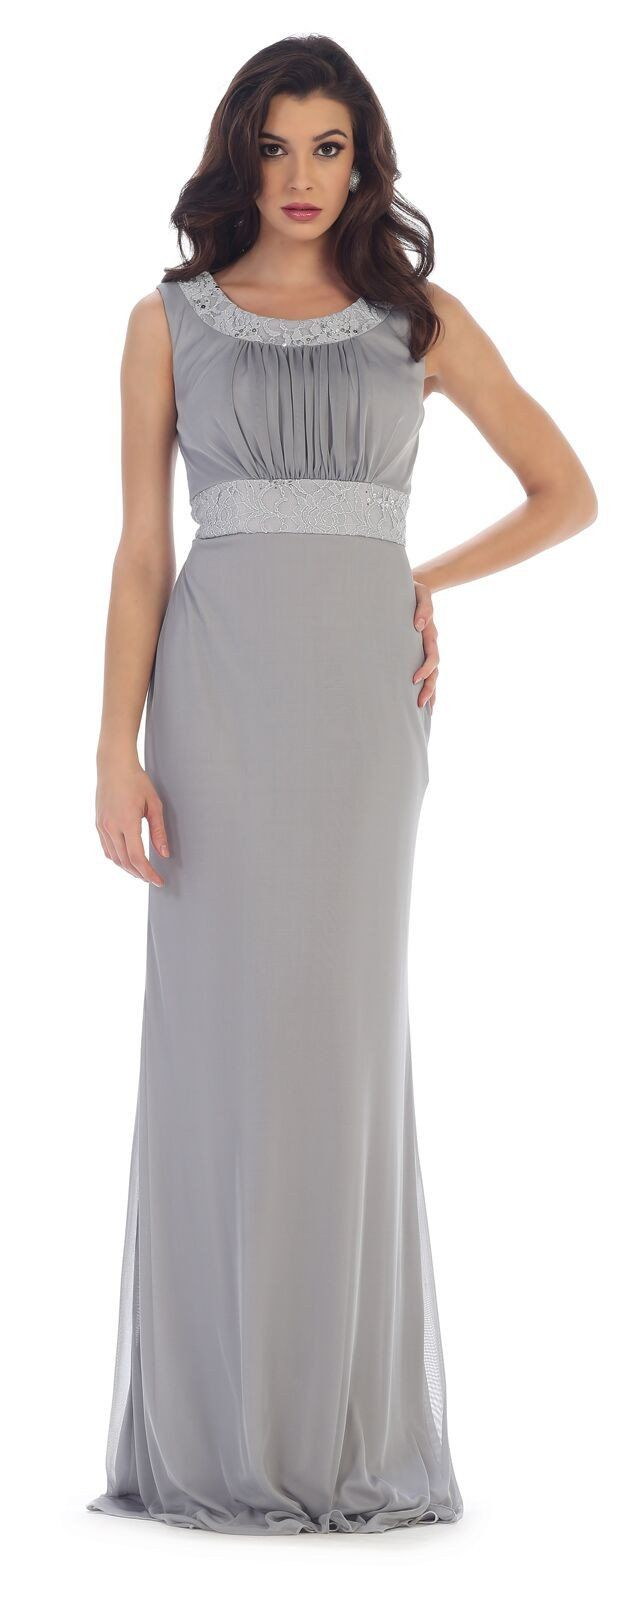 Long formal dress mother of the bride bridesmaids products